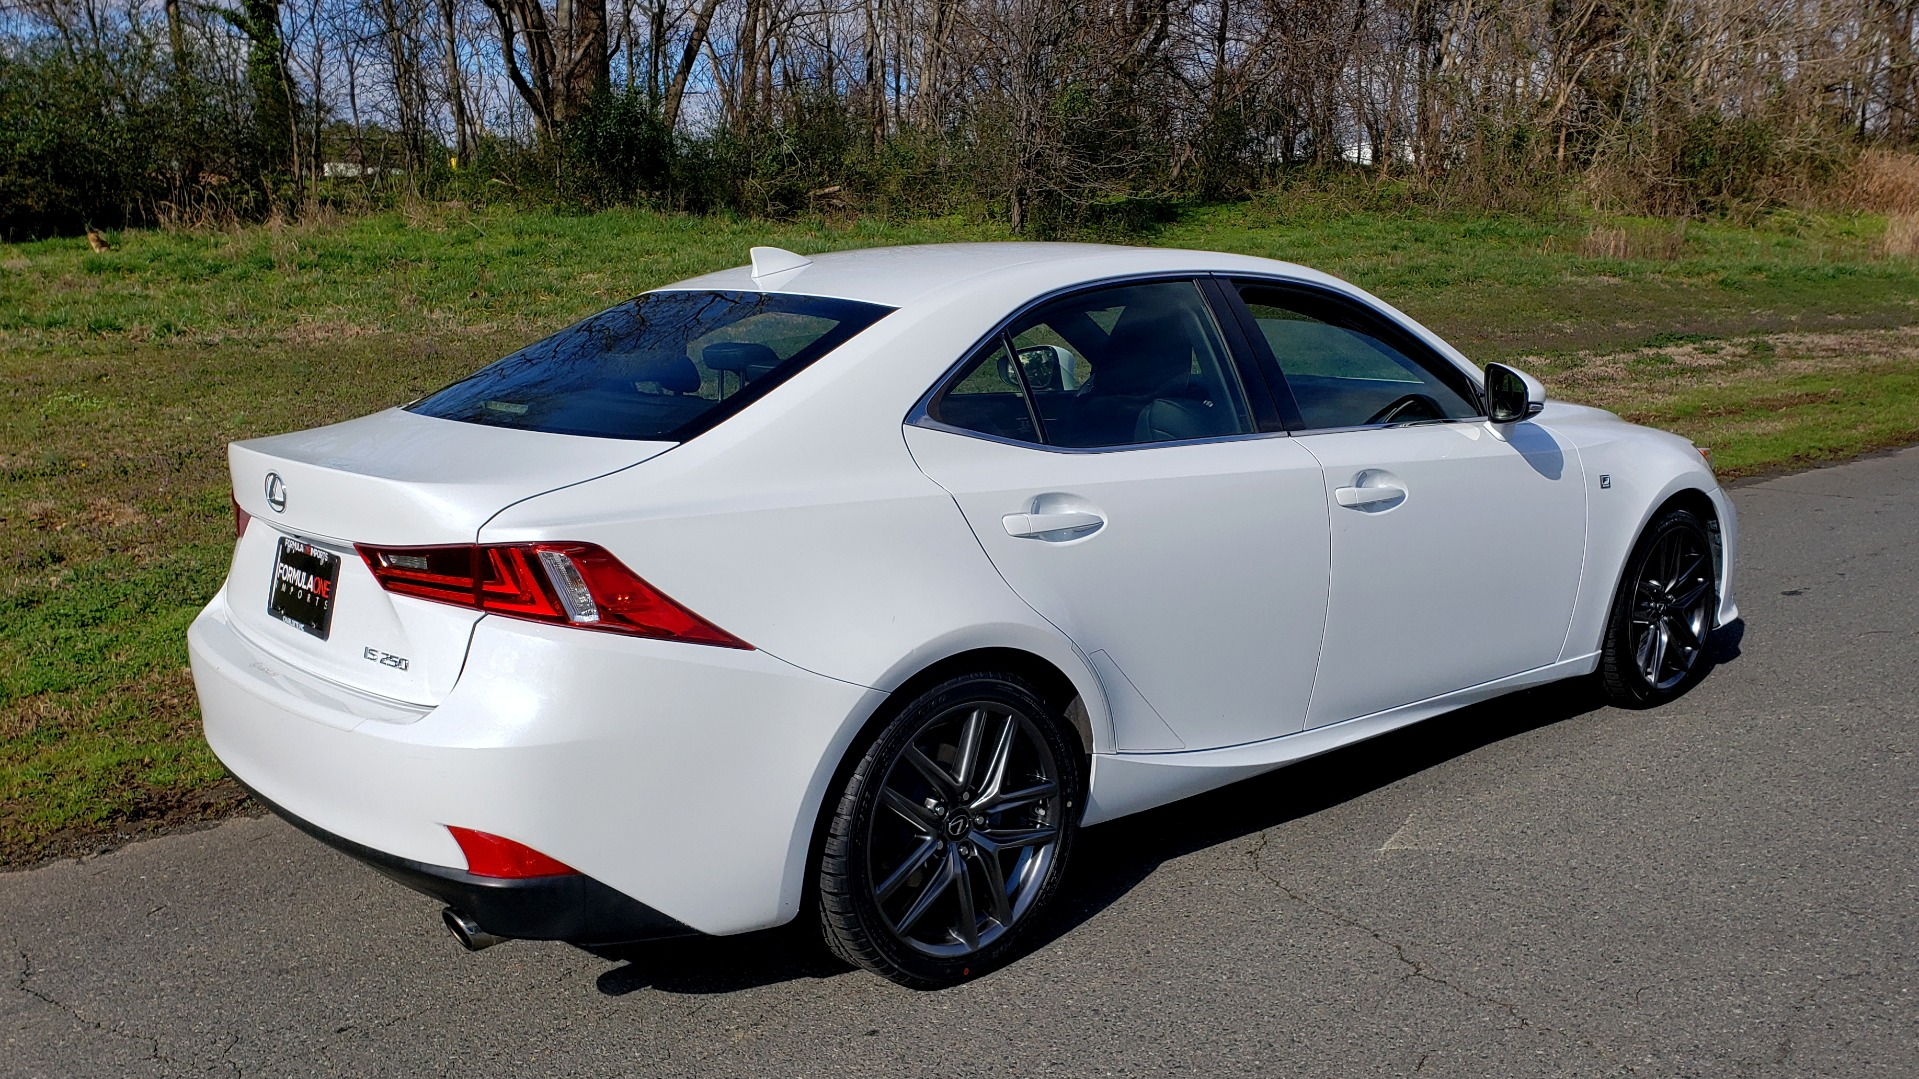 Used 2014 Lexus IS 250 F-SPORT / NAV / SUNROOF / REARVIEW / BSM for sale Sold at Formula Imports in Charlotte NC 28227 6